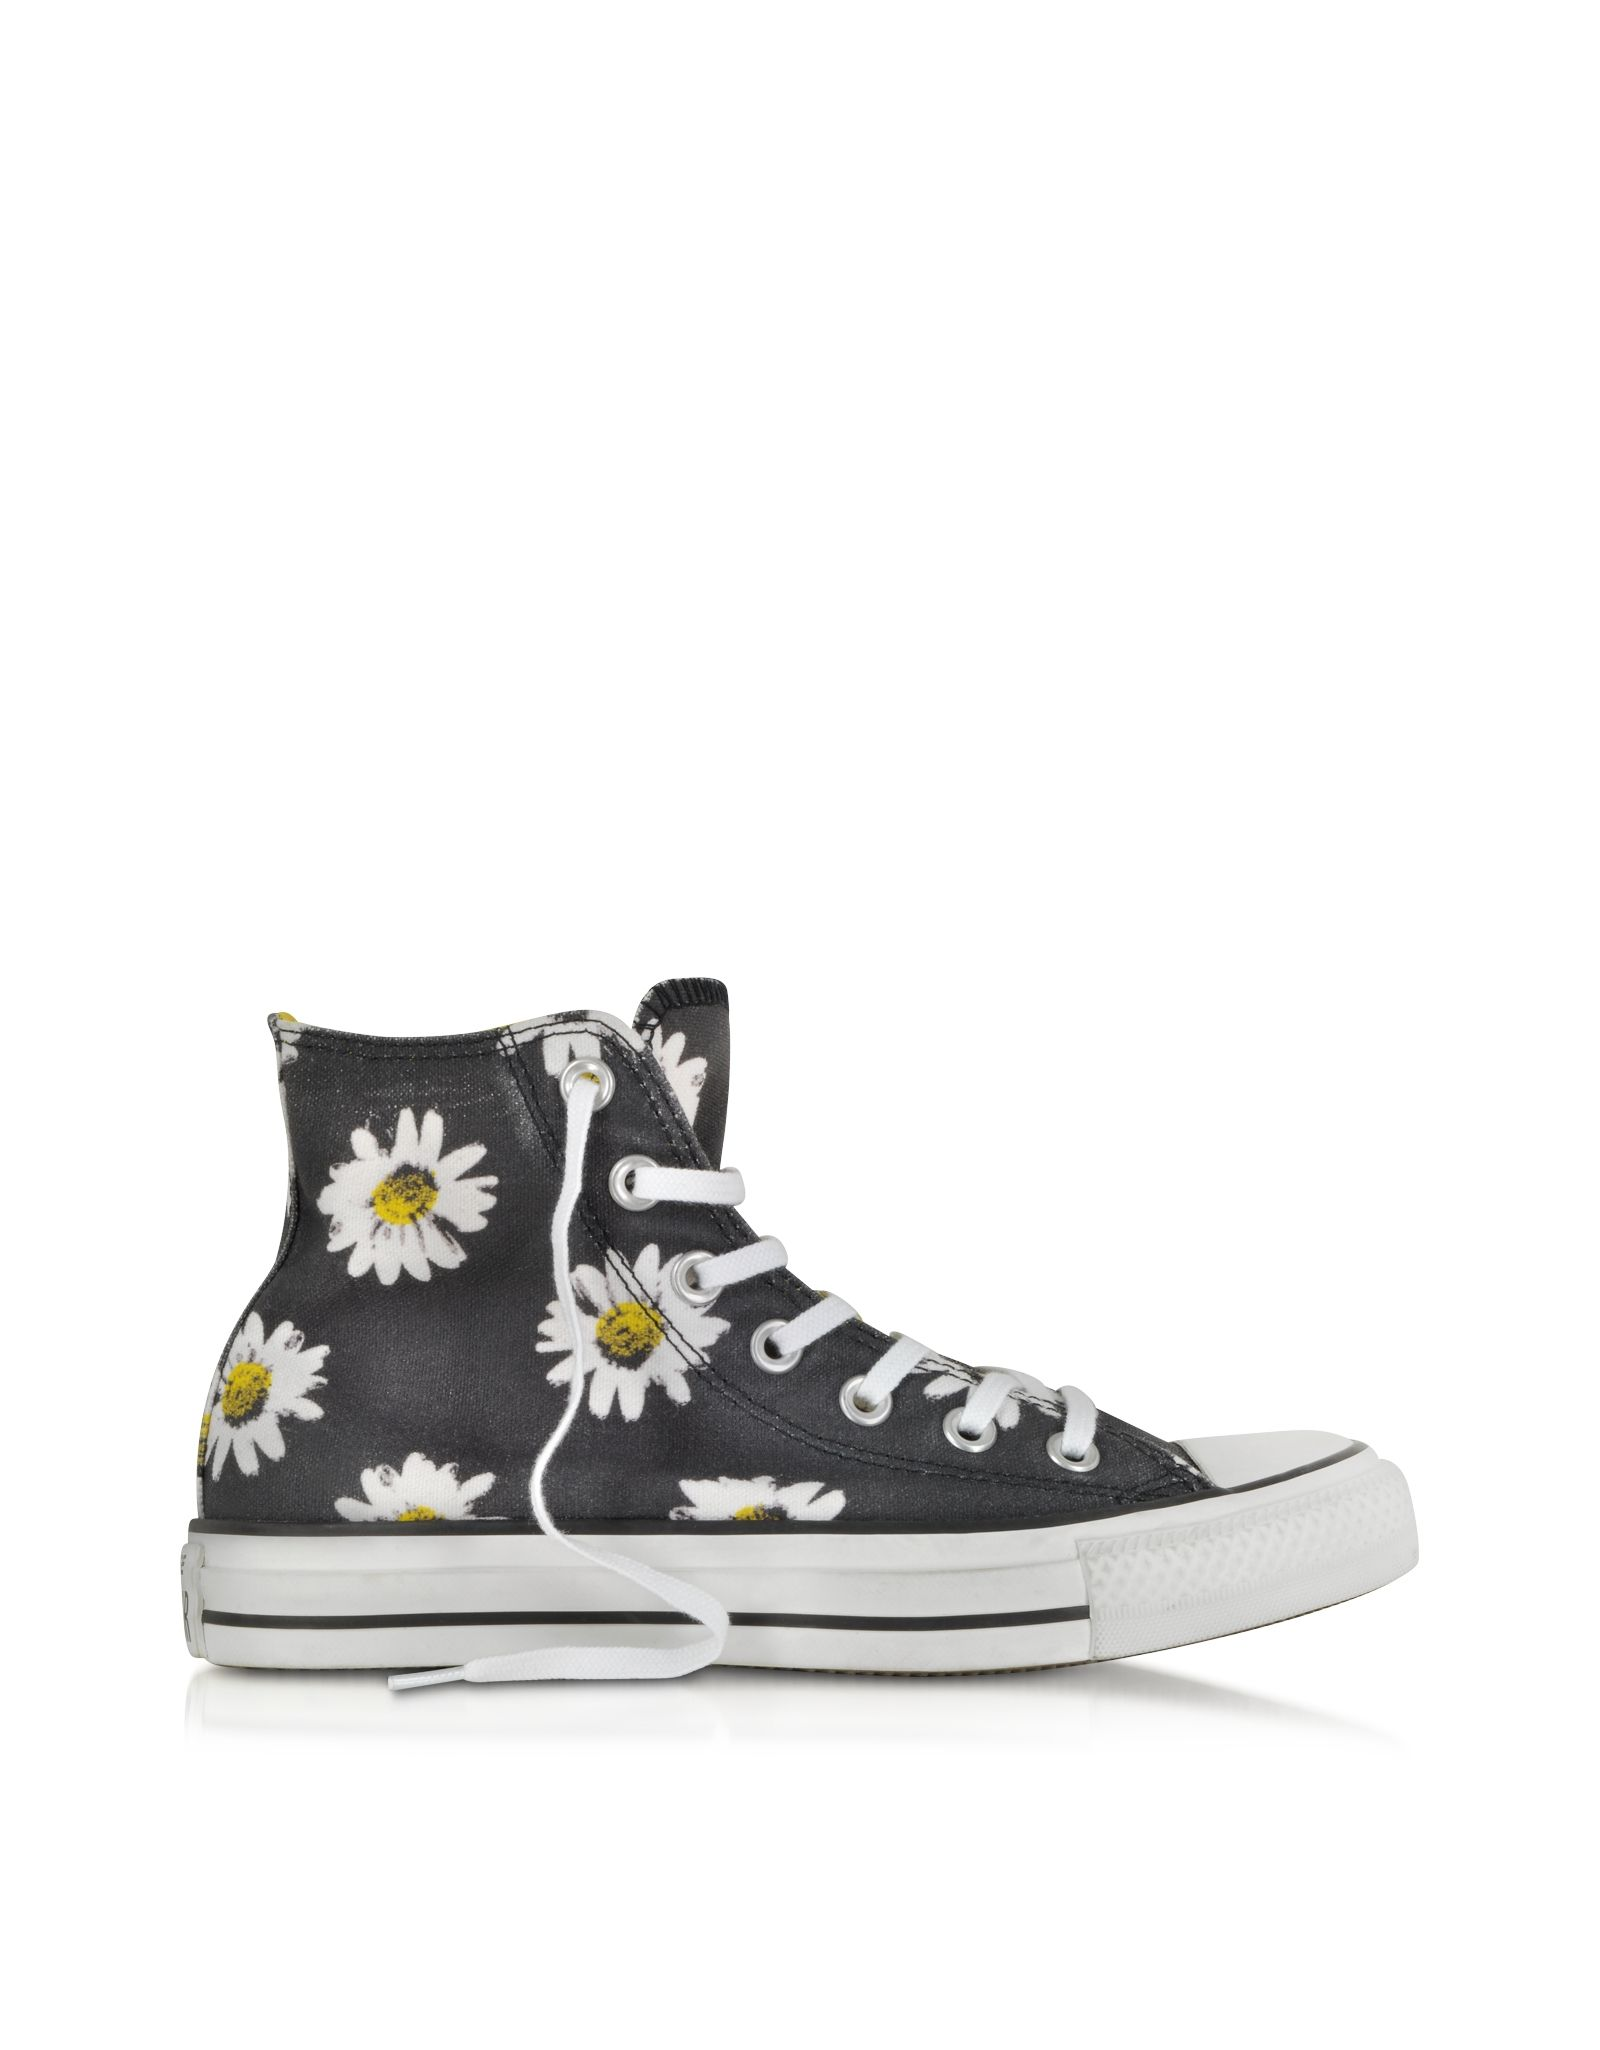 86f71481b4c7 Converse Limited Edition Chuck Taylor All Star Black and Citrus Daisy Printed  Canvas High Top Sneaker 3.5 (5.5 WOMENS US